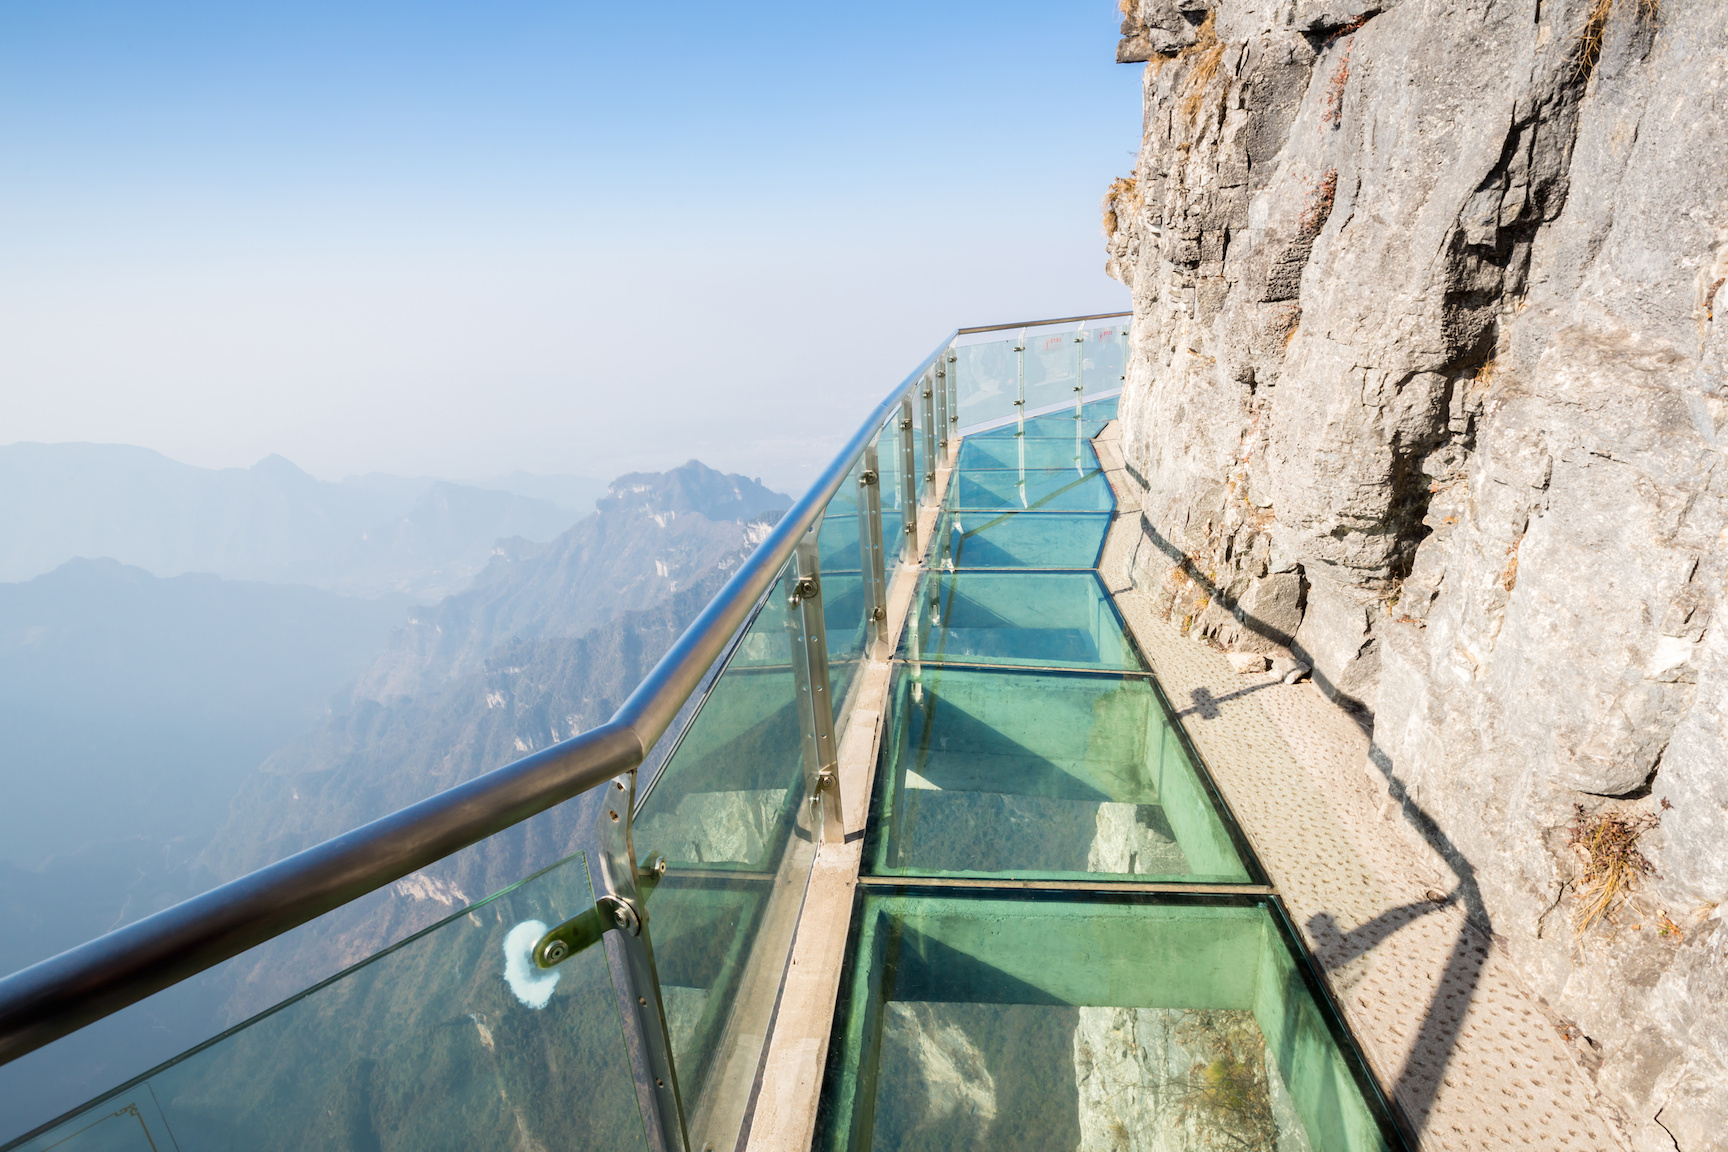 Tianmenshan tianmen mountain china living healthy in ukraine.